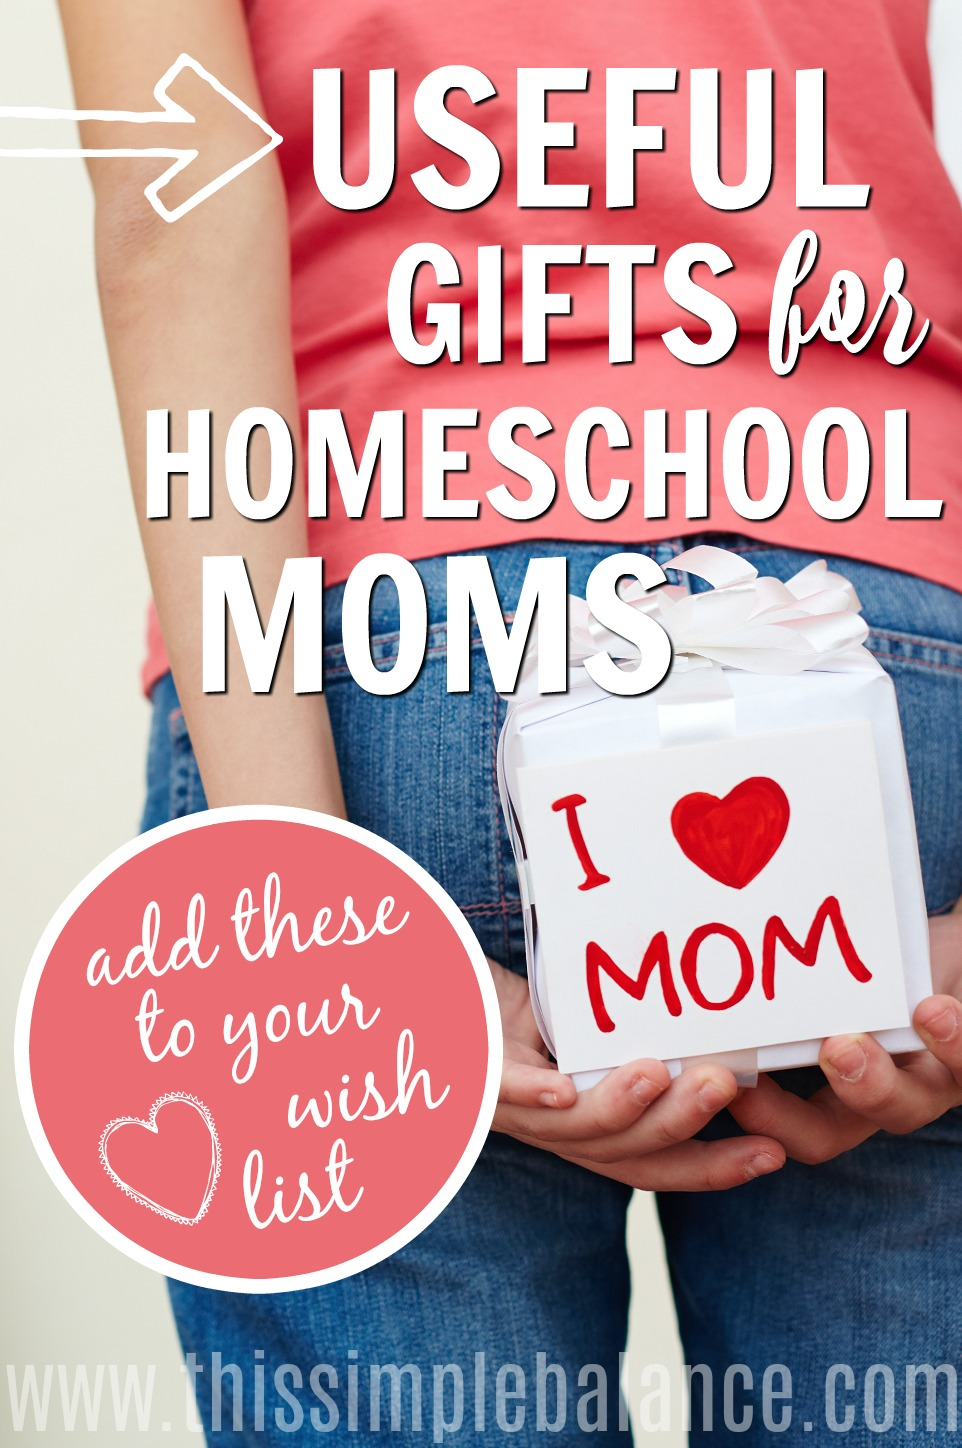 "Useful gifts to add to your wishlist, homeschool mom! (Or sneak this list to someone who needs gift ideas) Birthdays, Christmas, or ""just because"" gifts. #homeschoolmom #giftideas"